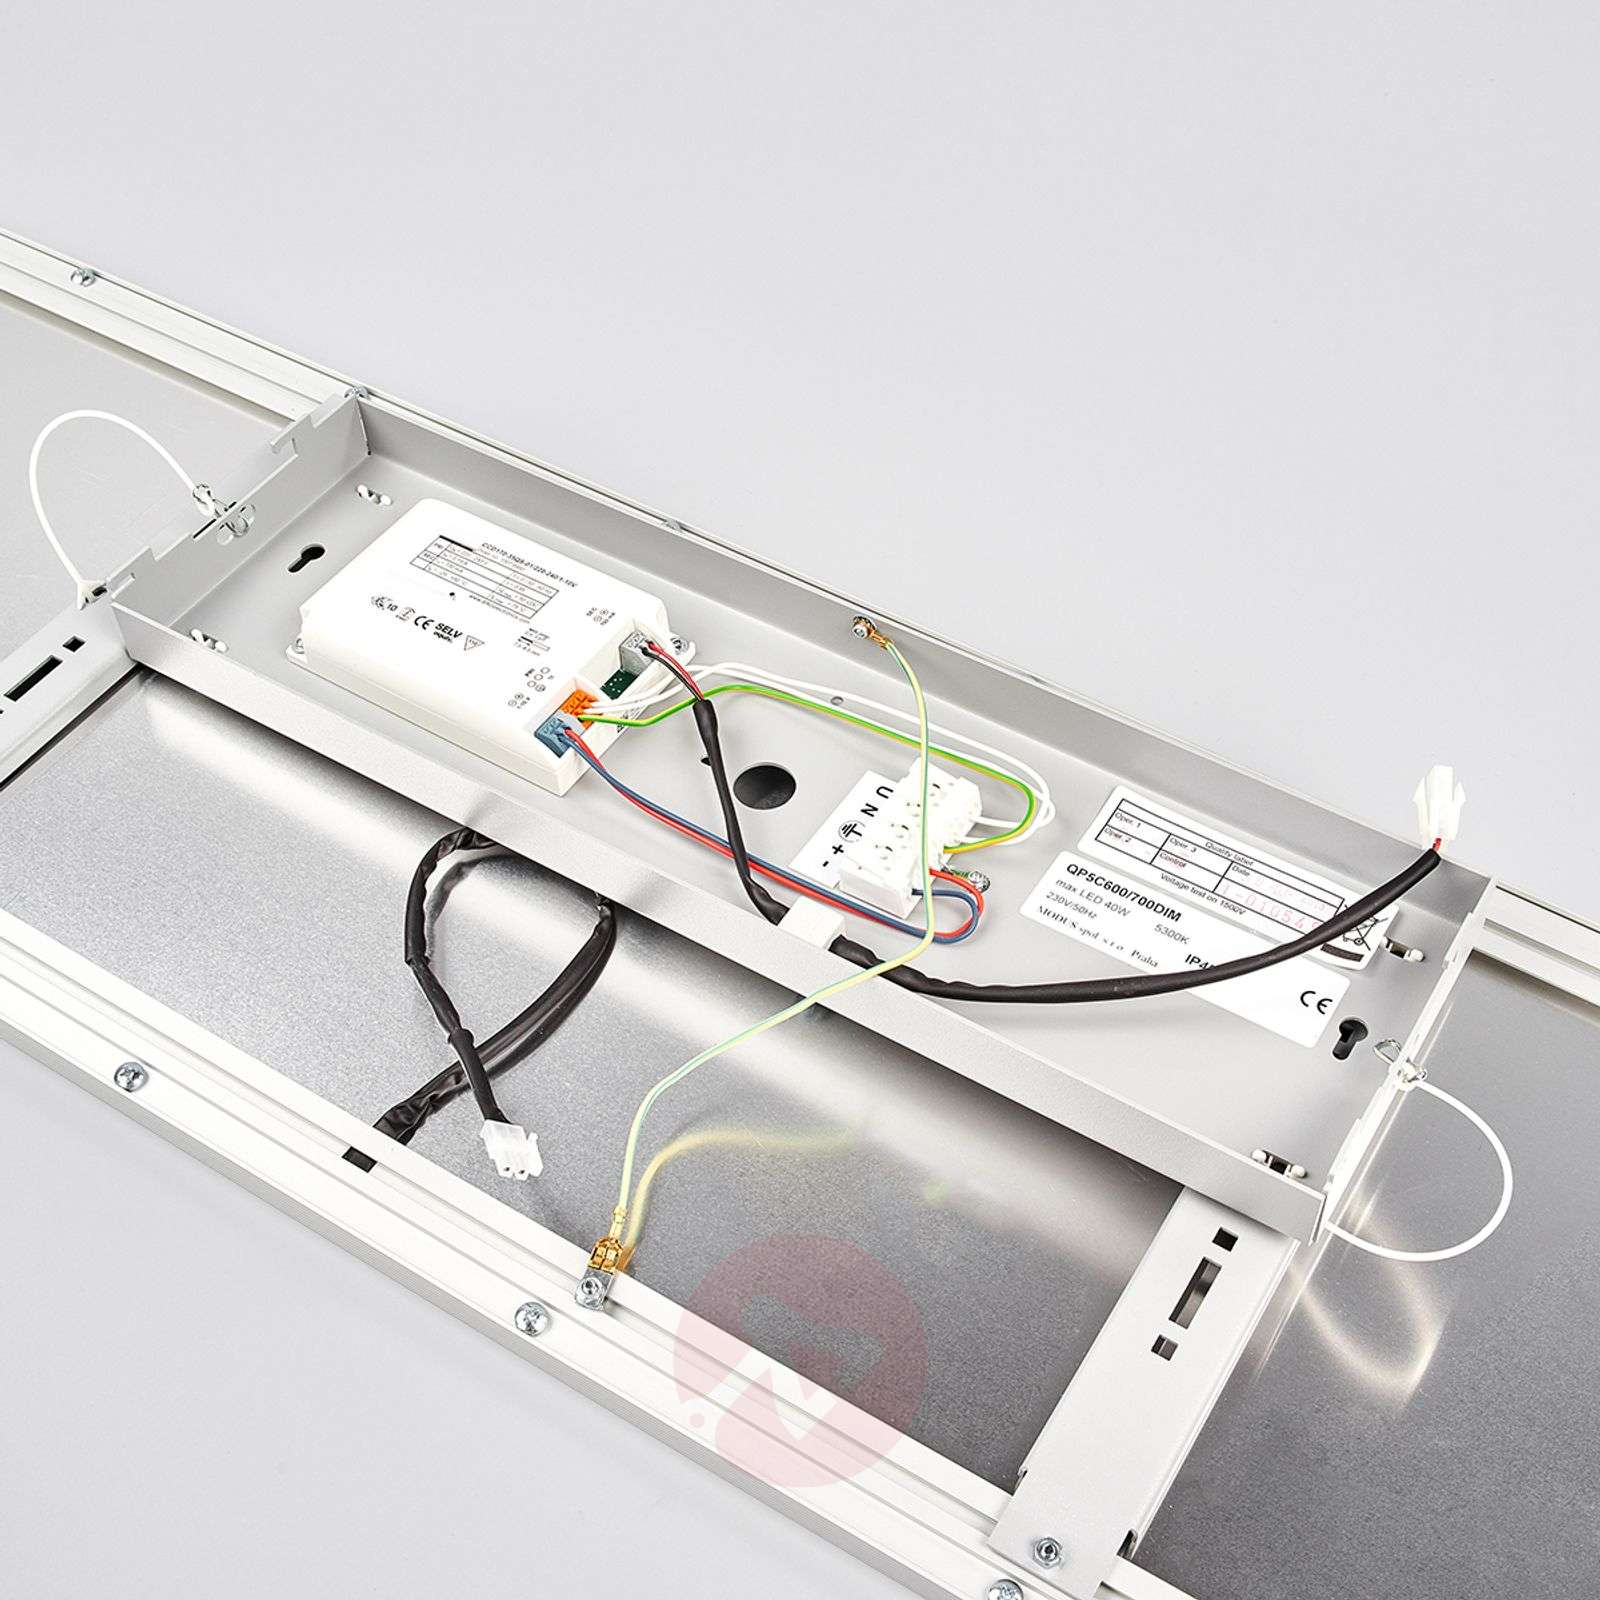 All-in-one universal LED panel, VDU, daylight-3002138-07